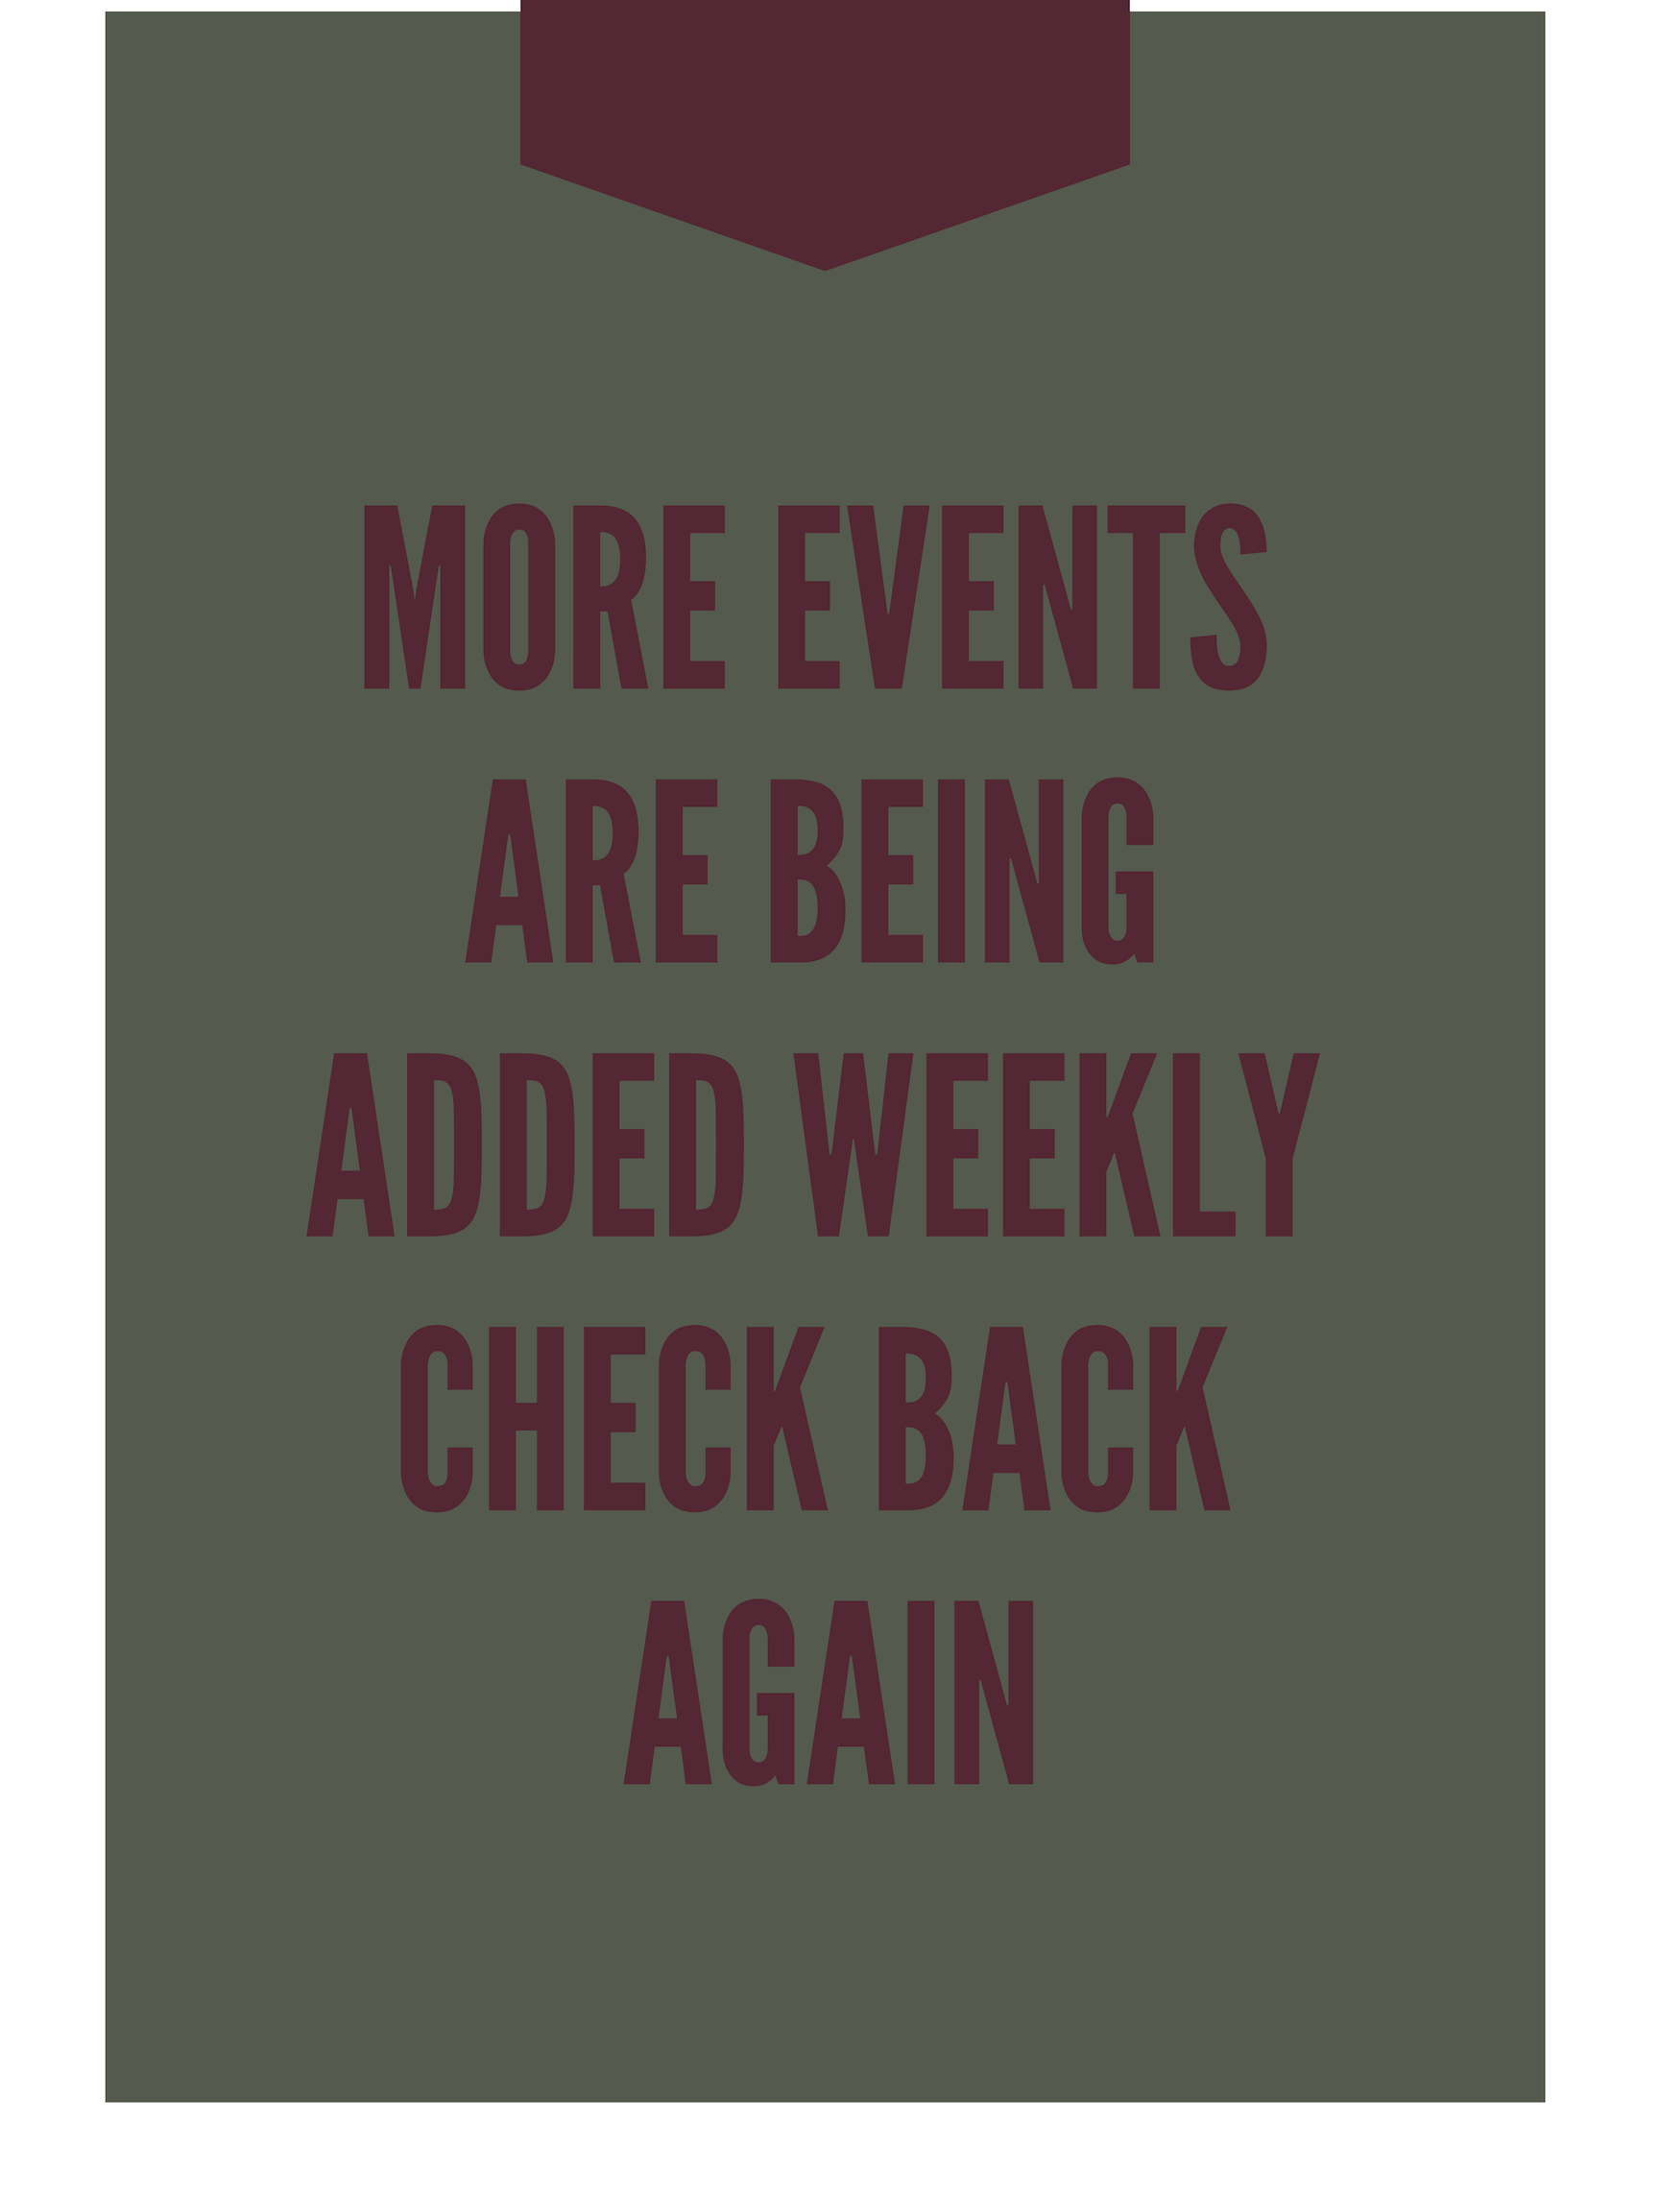 COMING SOON - We are hard at work organizing events in your area!